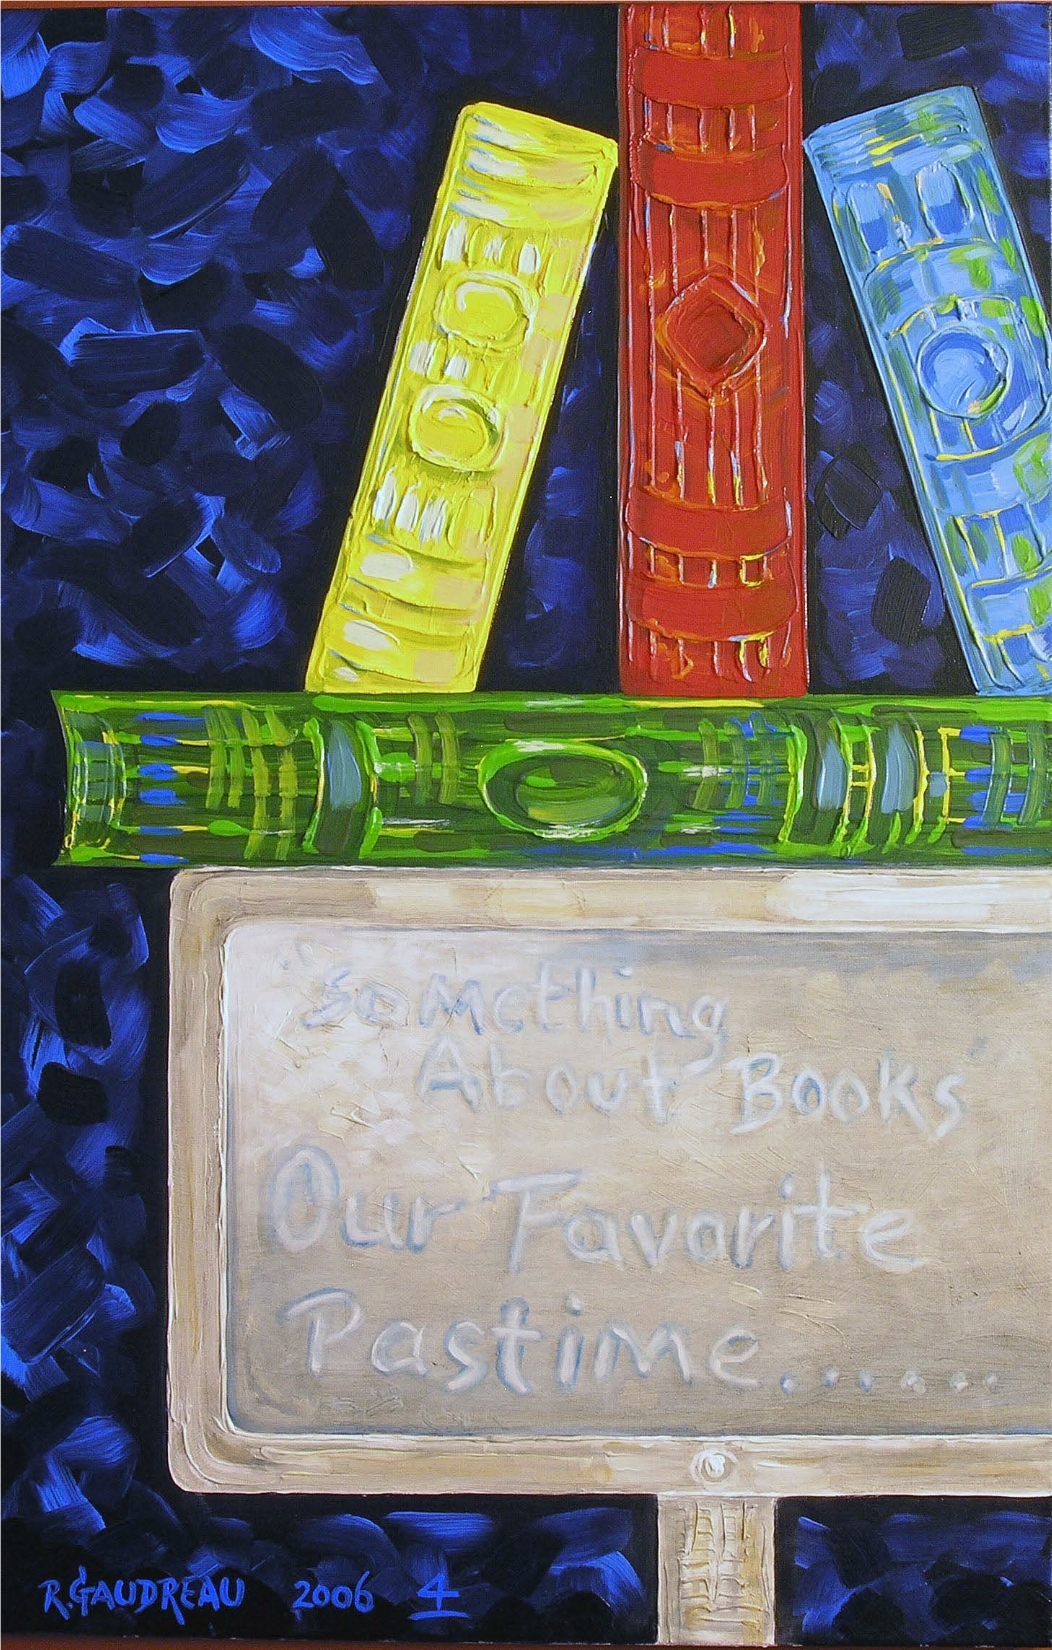 4 Books 2006 oil on canvas 36 x 24 inches